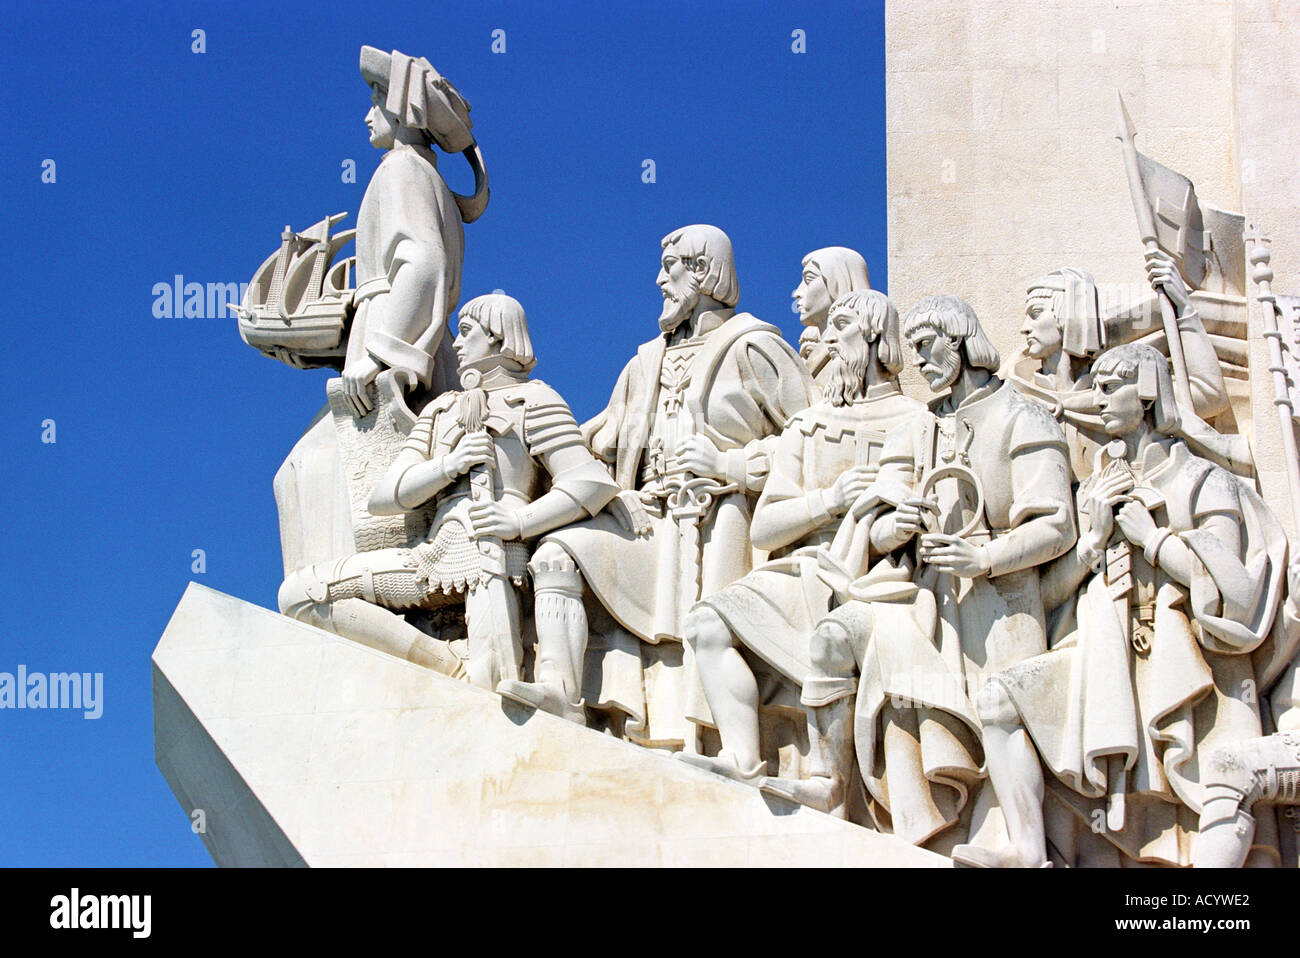 Monument to the Discoveries in Lisbon Portugal - Stock Image